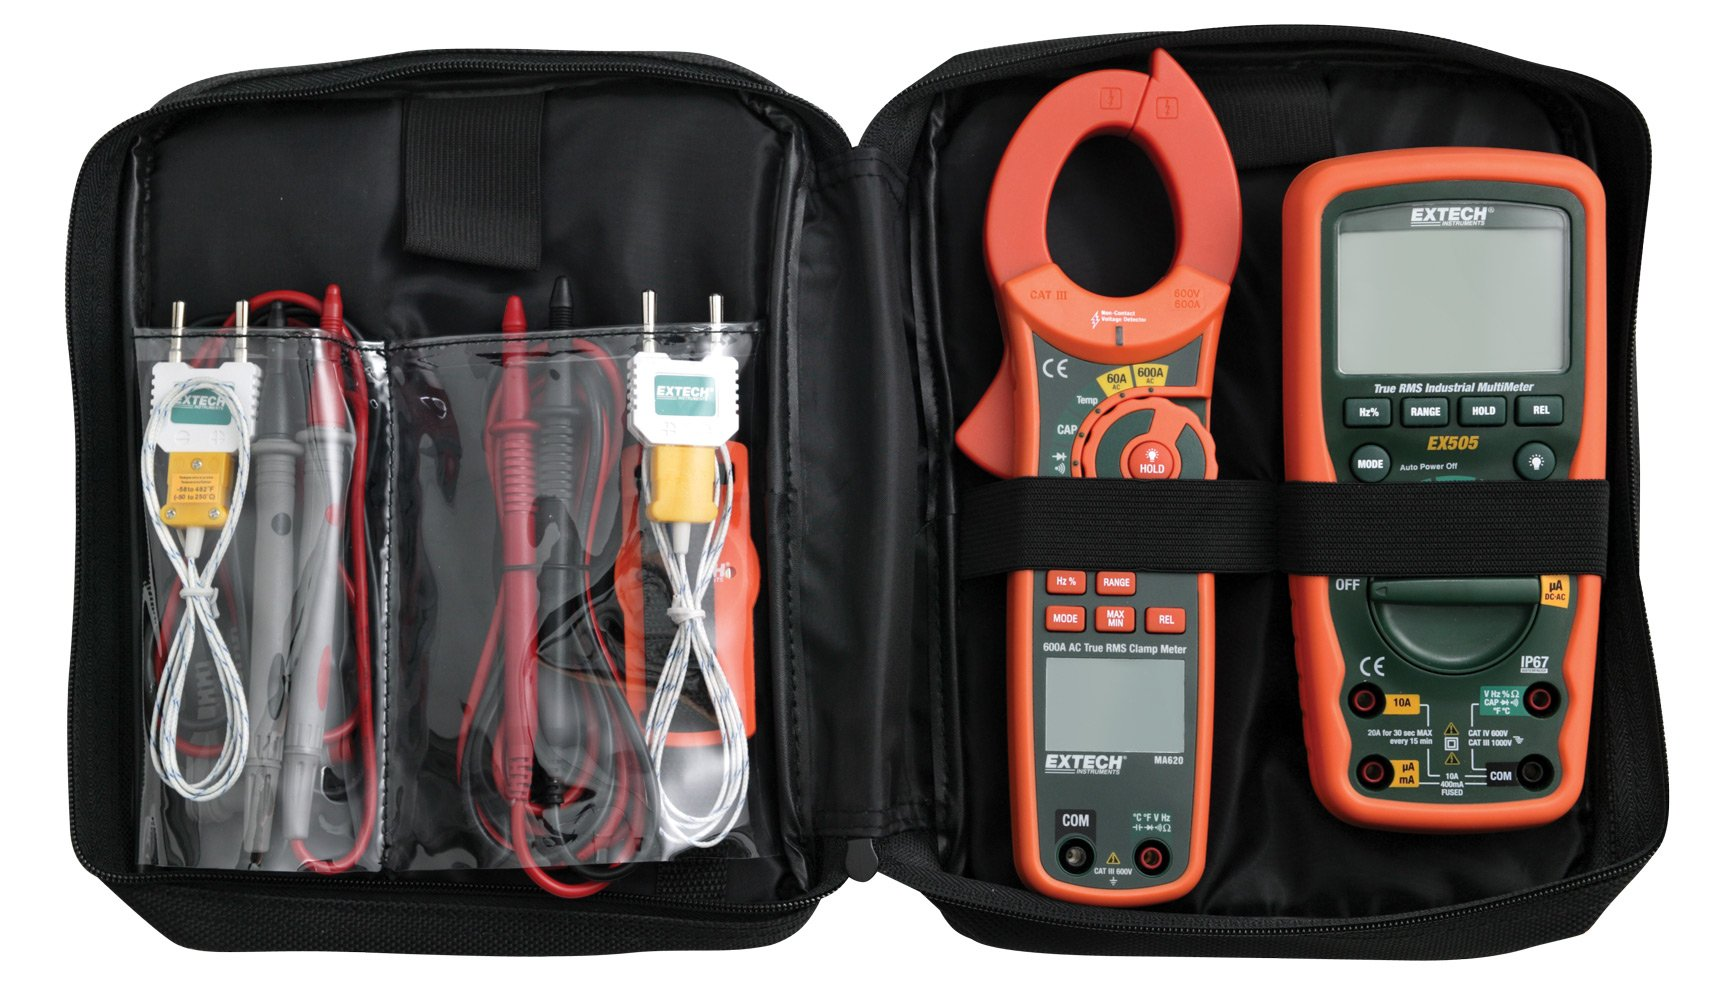 Extech MA620-K Industrial DMM/Clamp Meter Test Kit by Extech (Image #2)